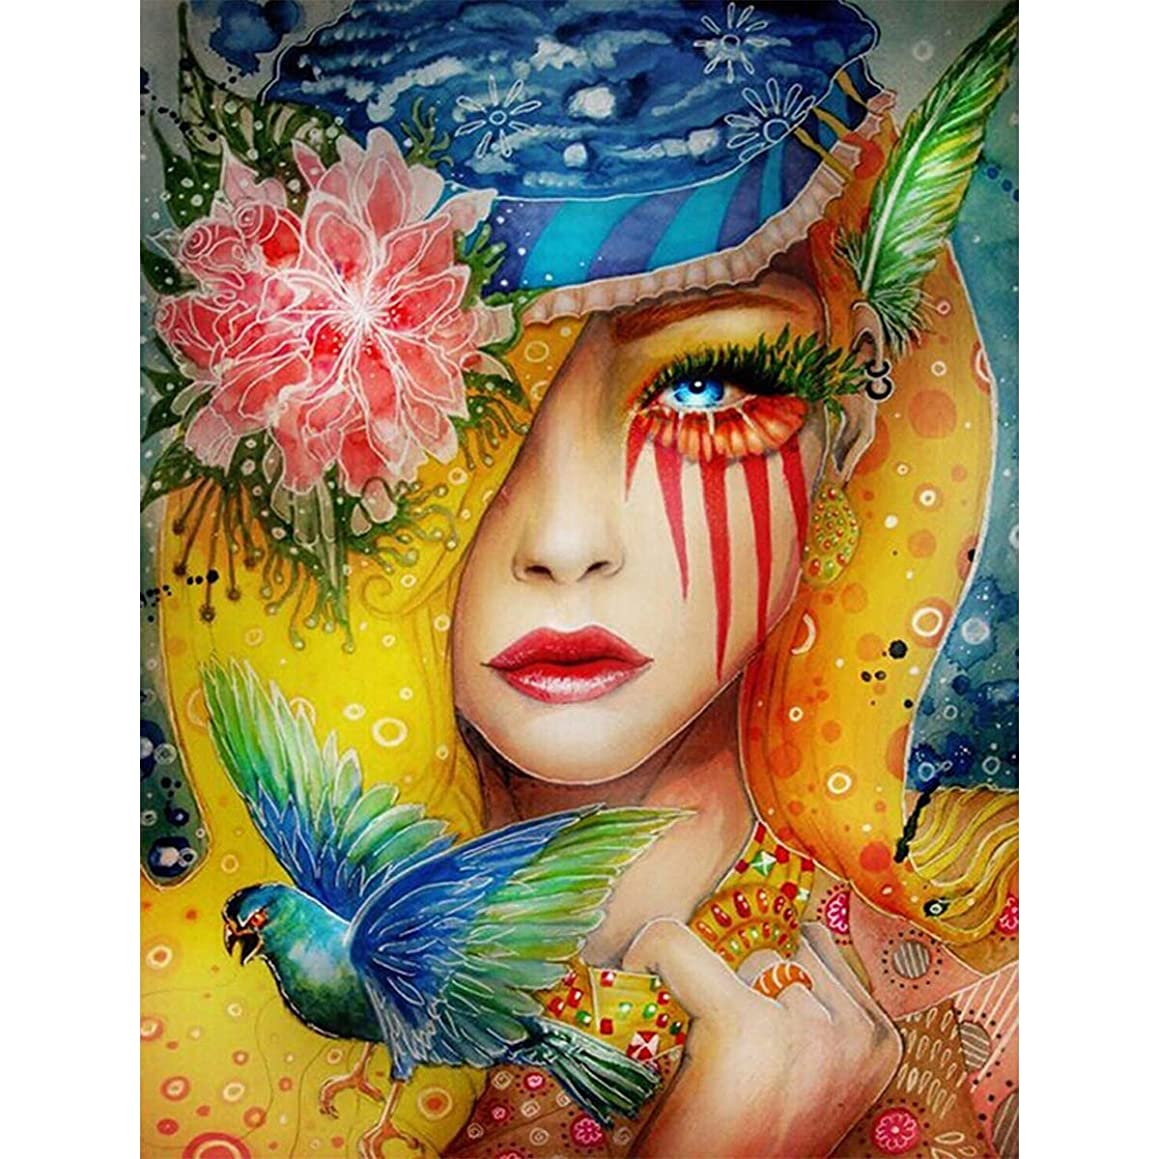 Ginfonr 5D Diamond Painting Kit Noble Lady Full Drill by Number Kits for Adults, Flower Women DIY Paint with Diamonds Art Colorful Girl Bird Rhinestone Craft Decor for Home (12x16 inch)